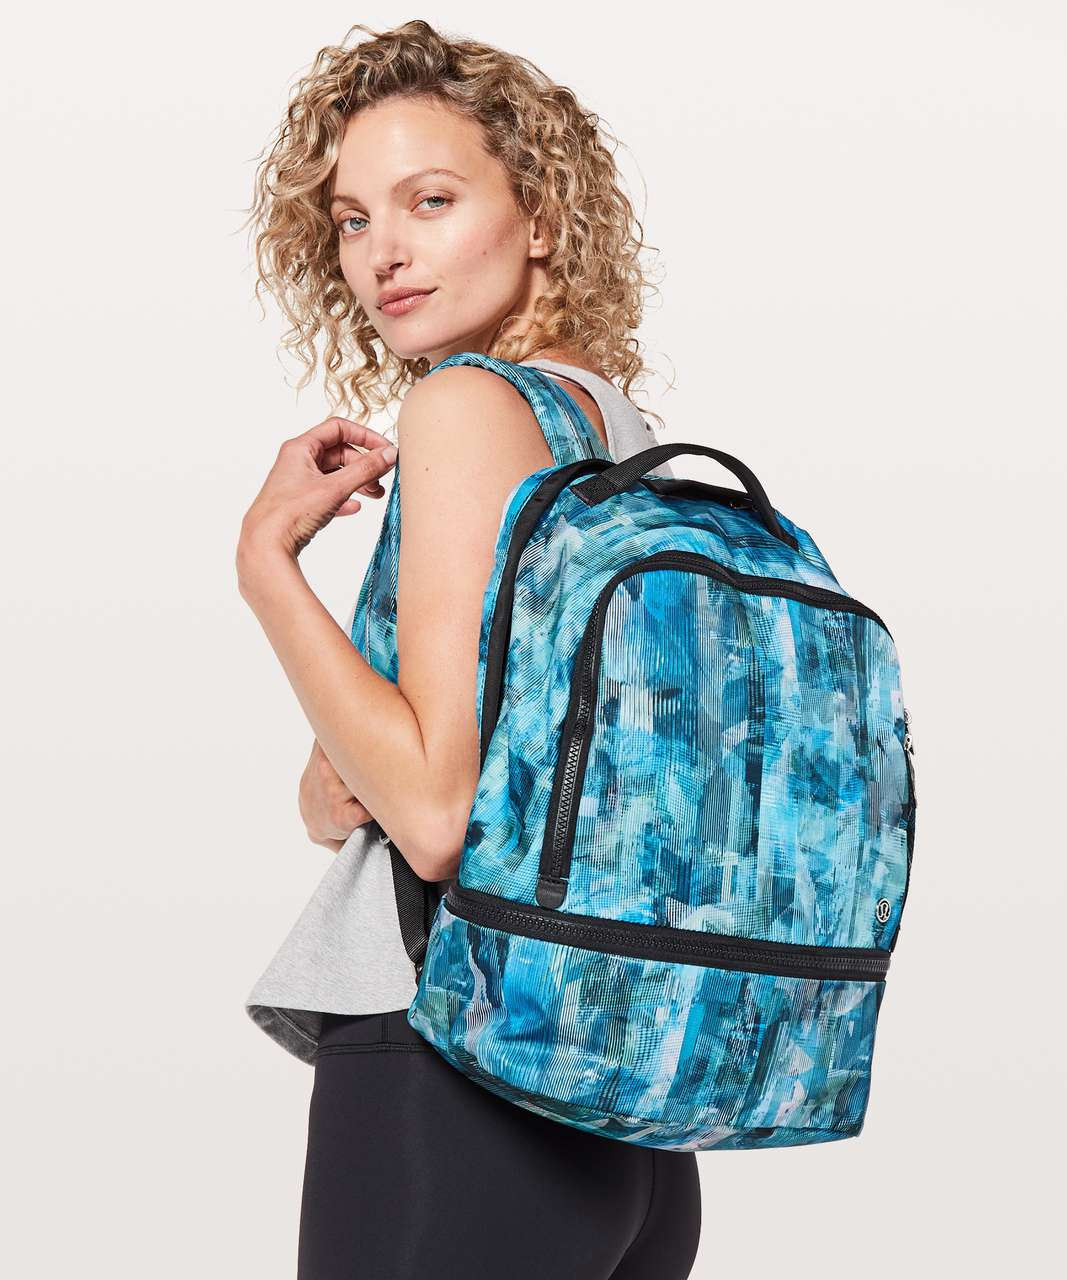 Lululemon City Adventurer Backpack *17L - Sun Dazed Multi Blue / Black